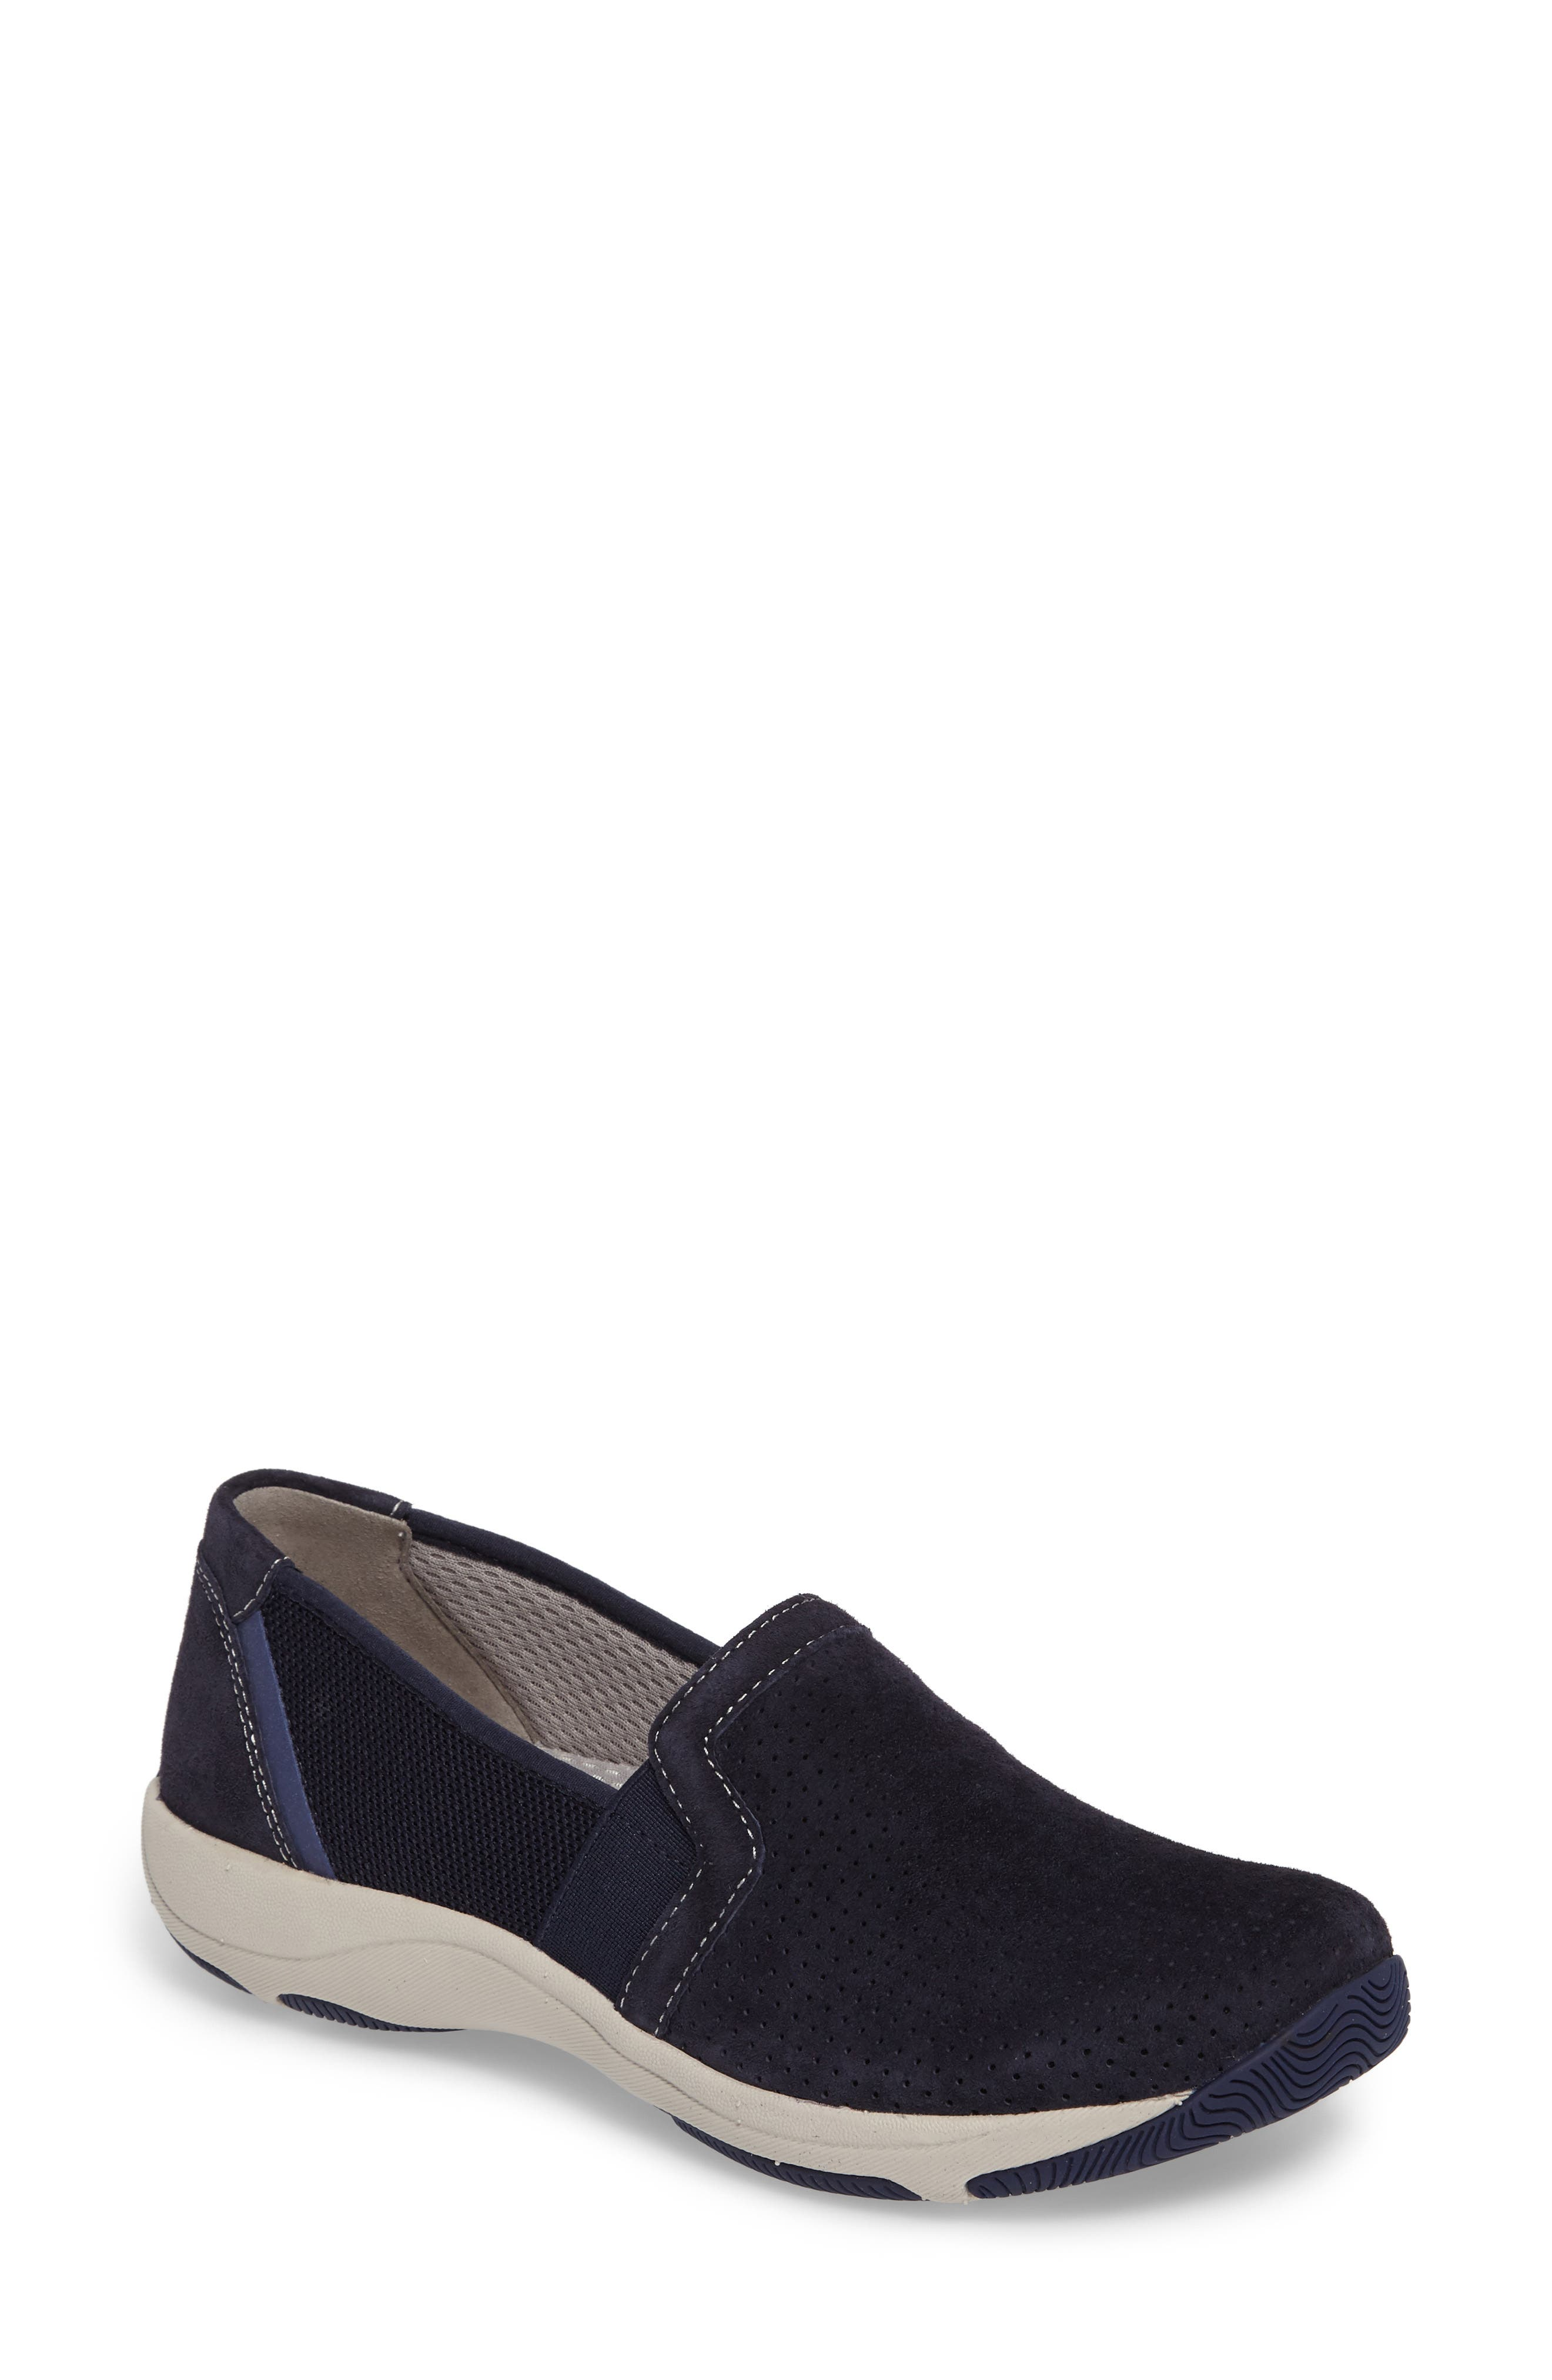 Halifax Collection Halle Slip-On Sneaker,                             Main thumbnail 1, color,                             Navy Suede